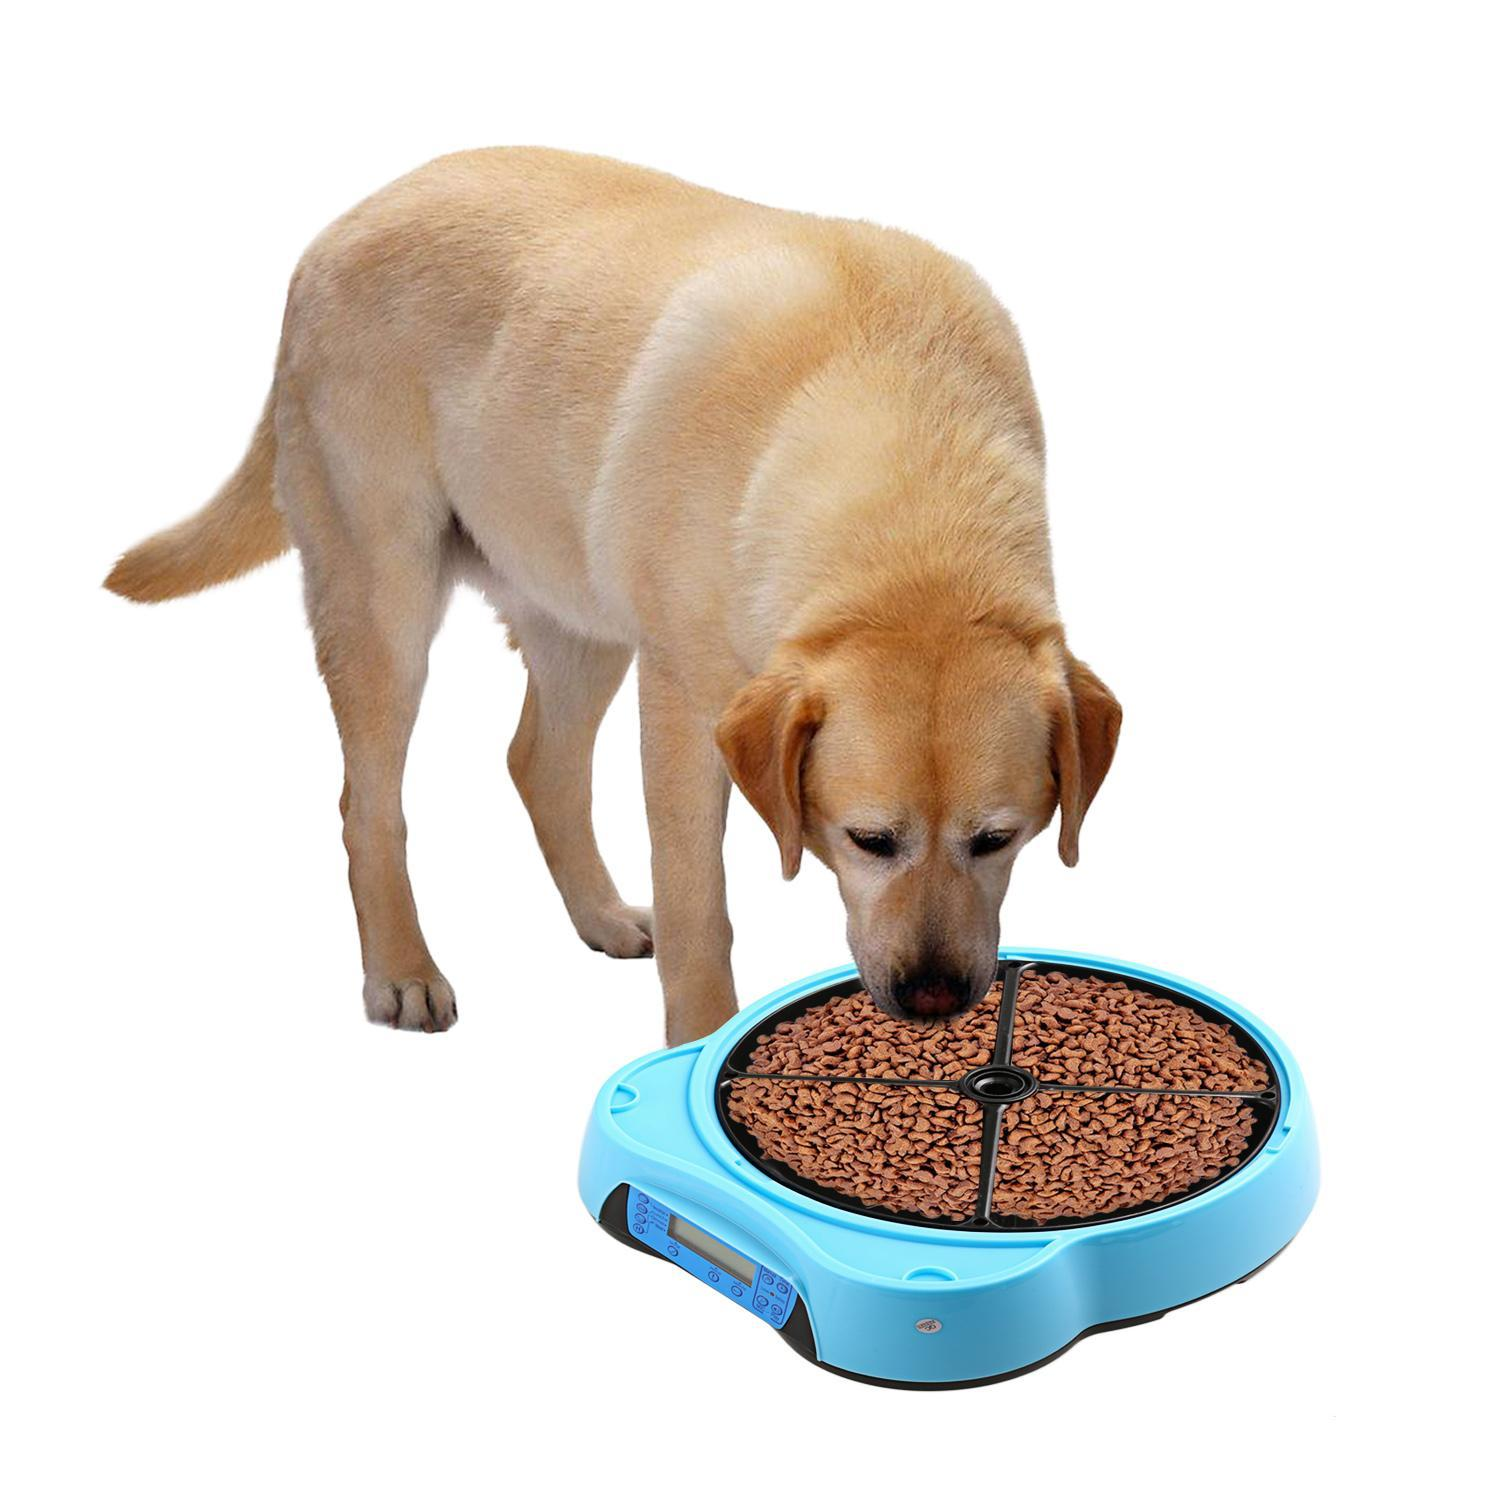 built with in webcam and apps food com dry feed wet dog amazon model now smart timer feeder ios android for pet dp meds go supplies treats